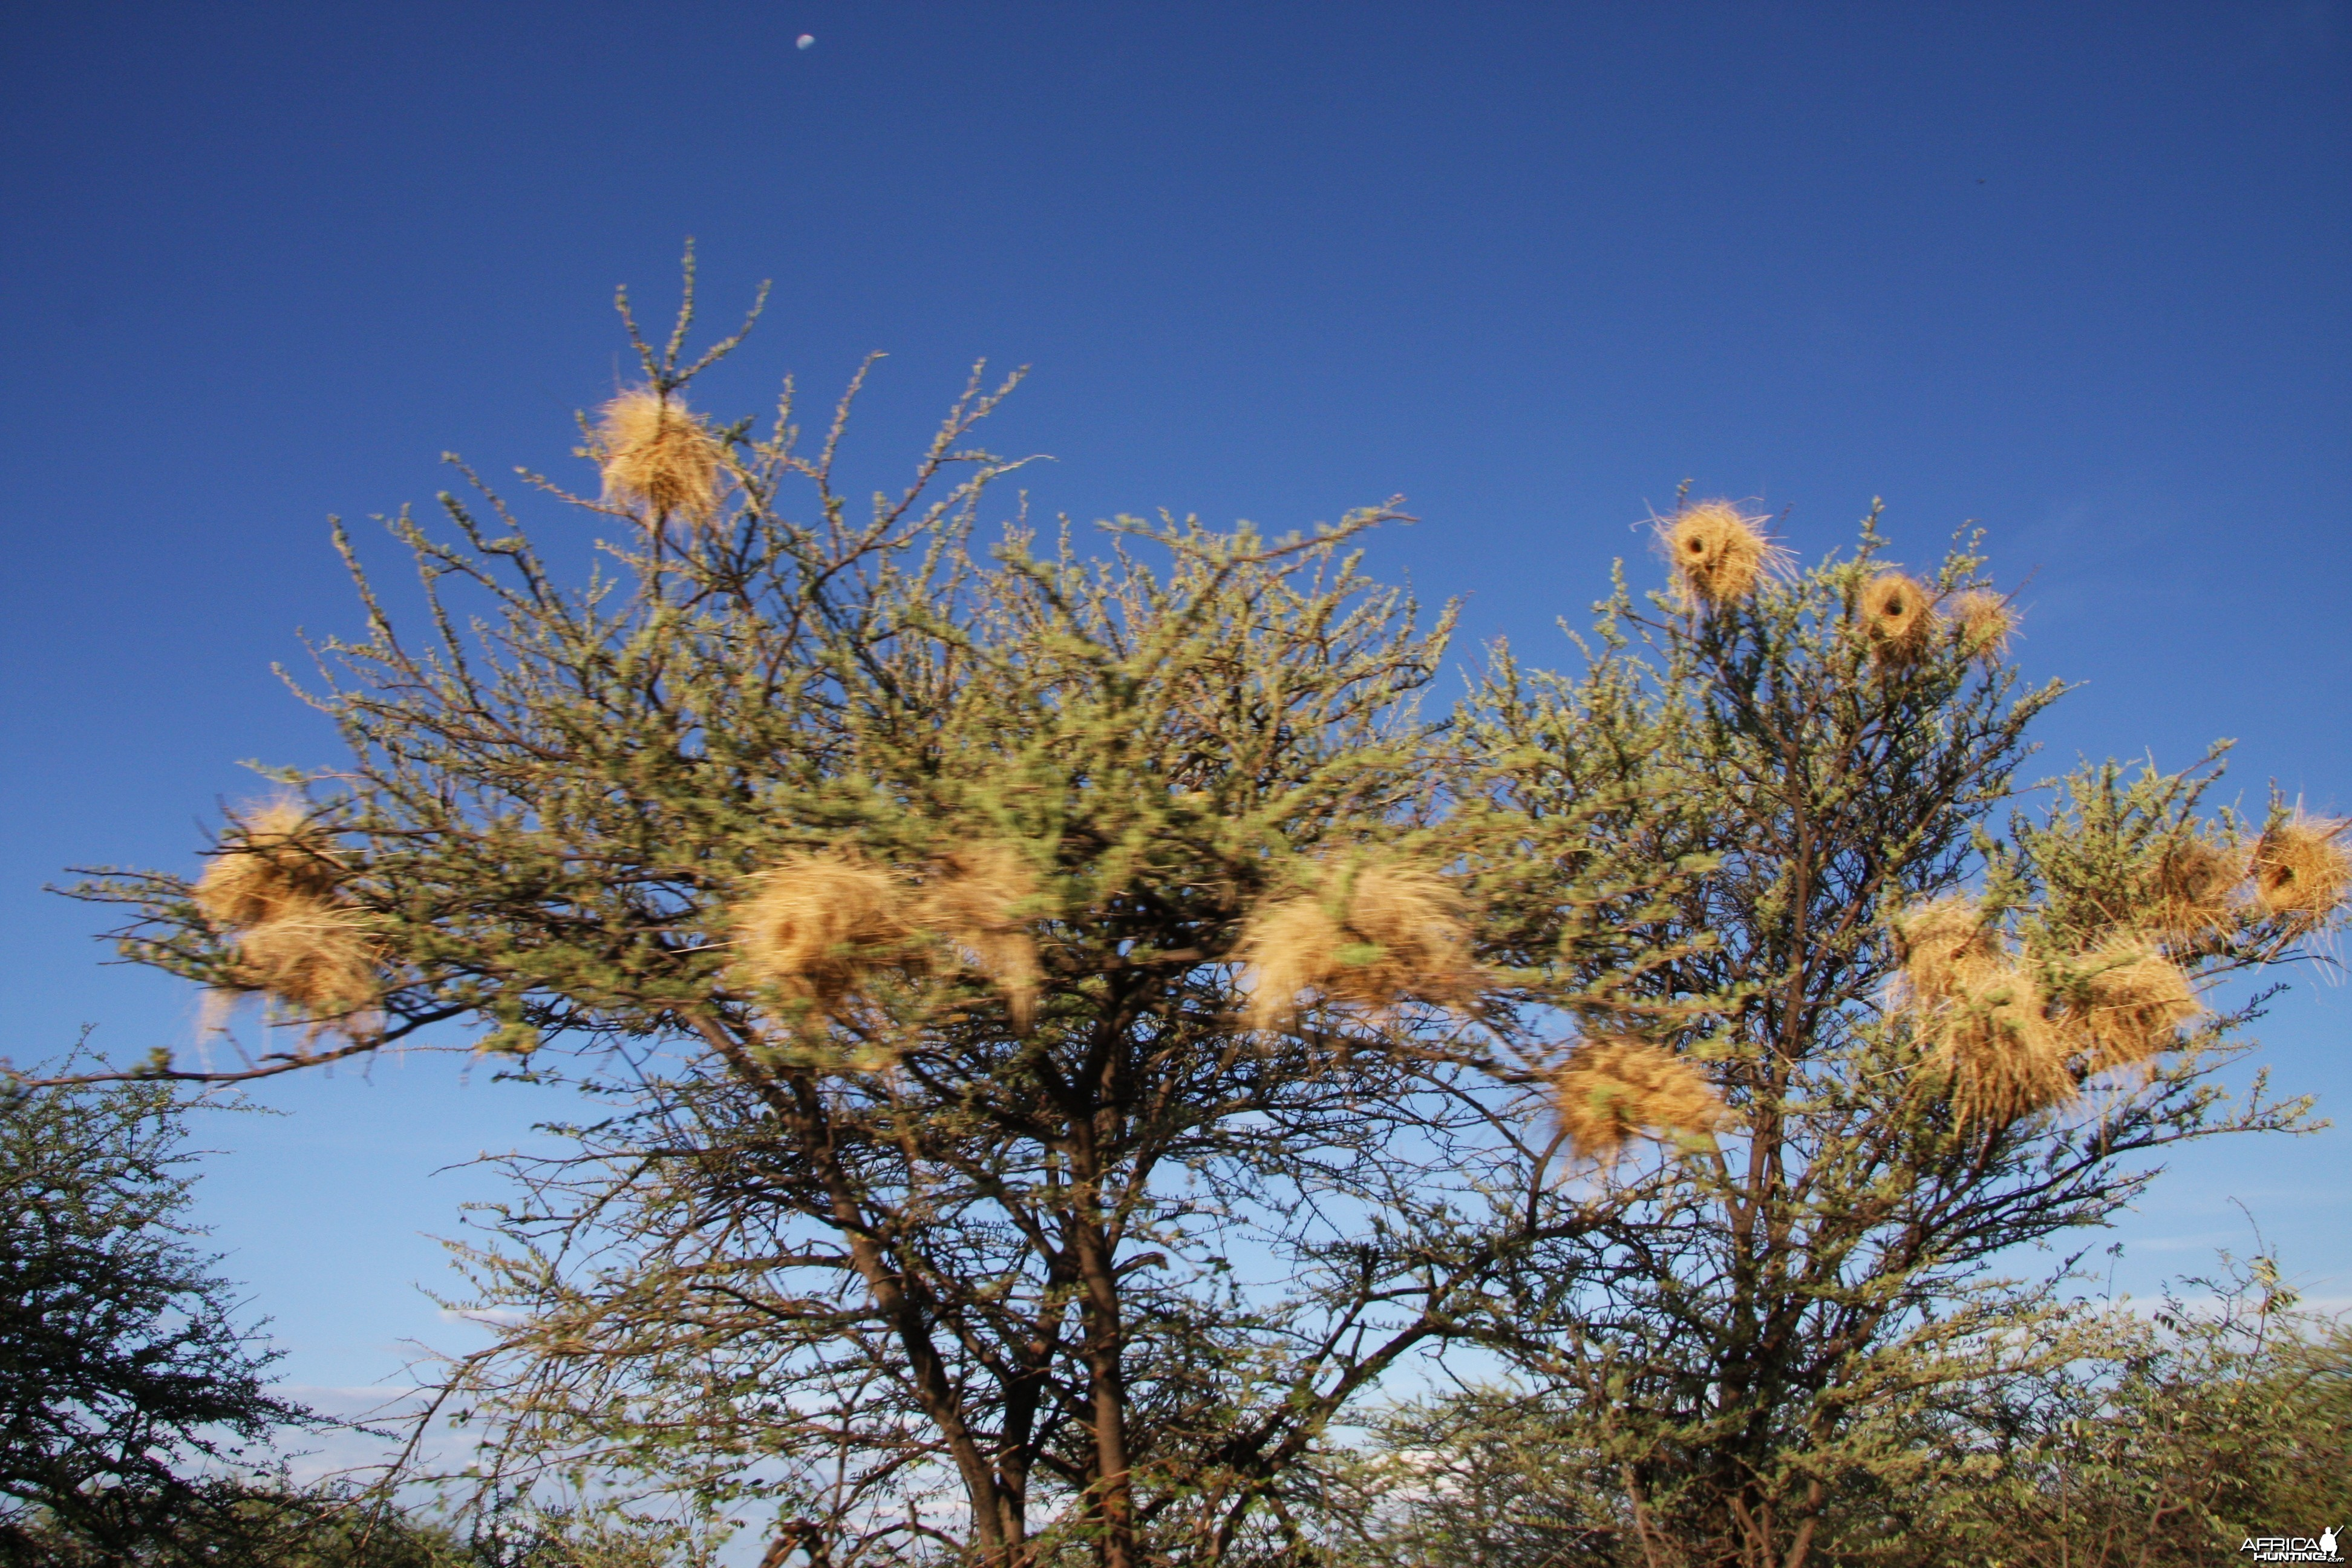 Bird nests Namibia